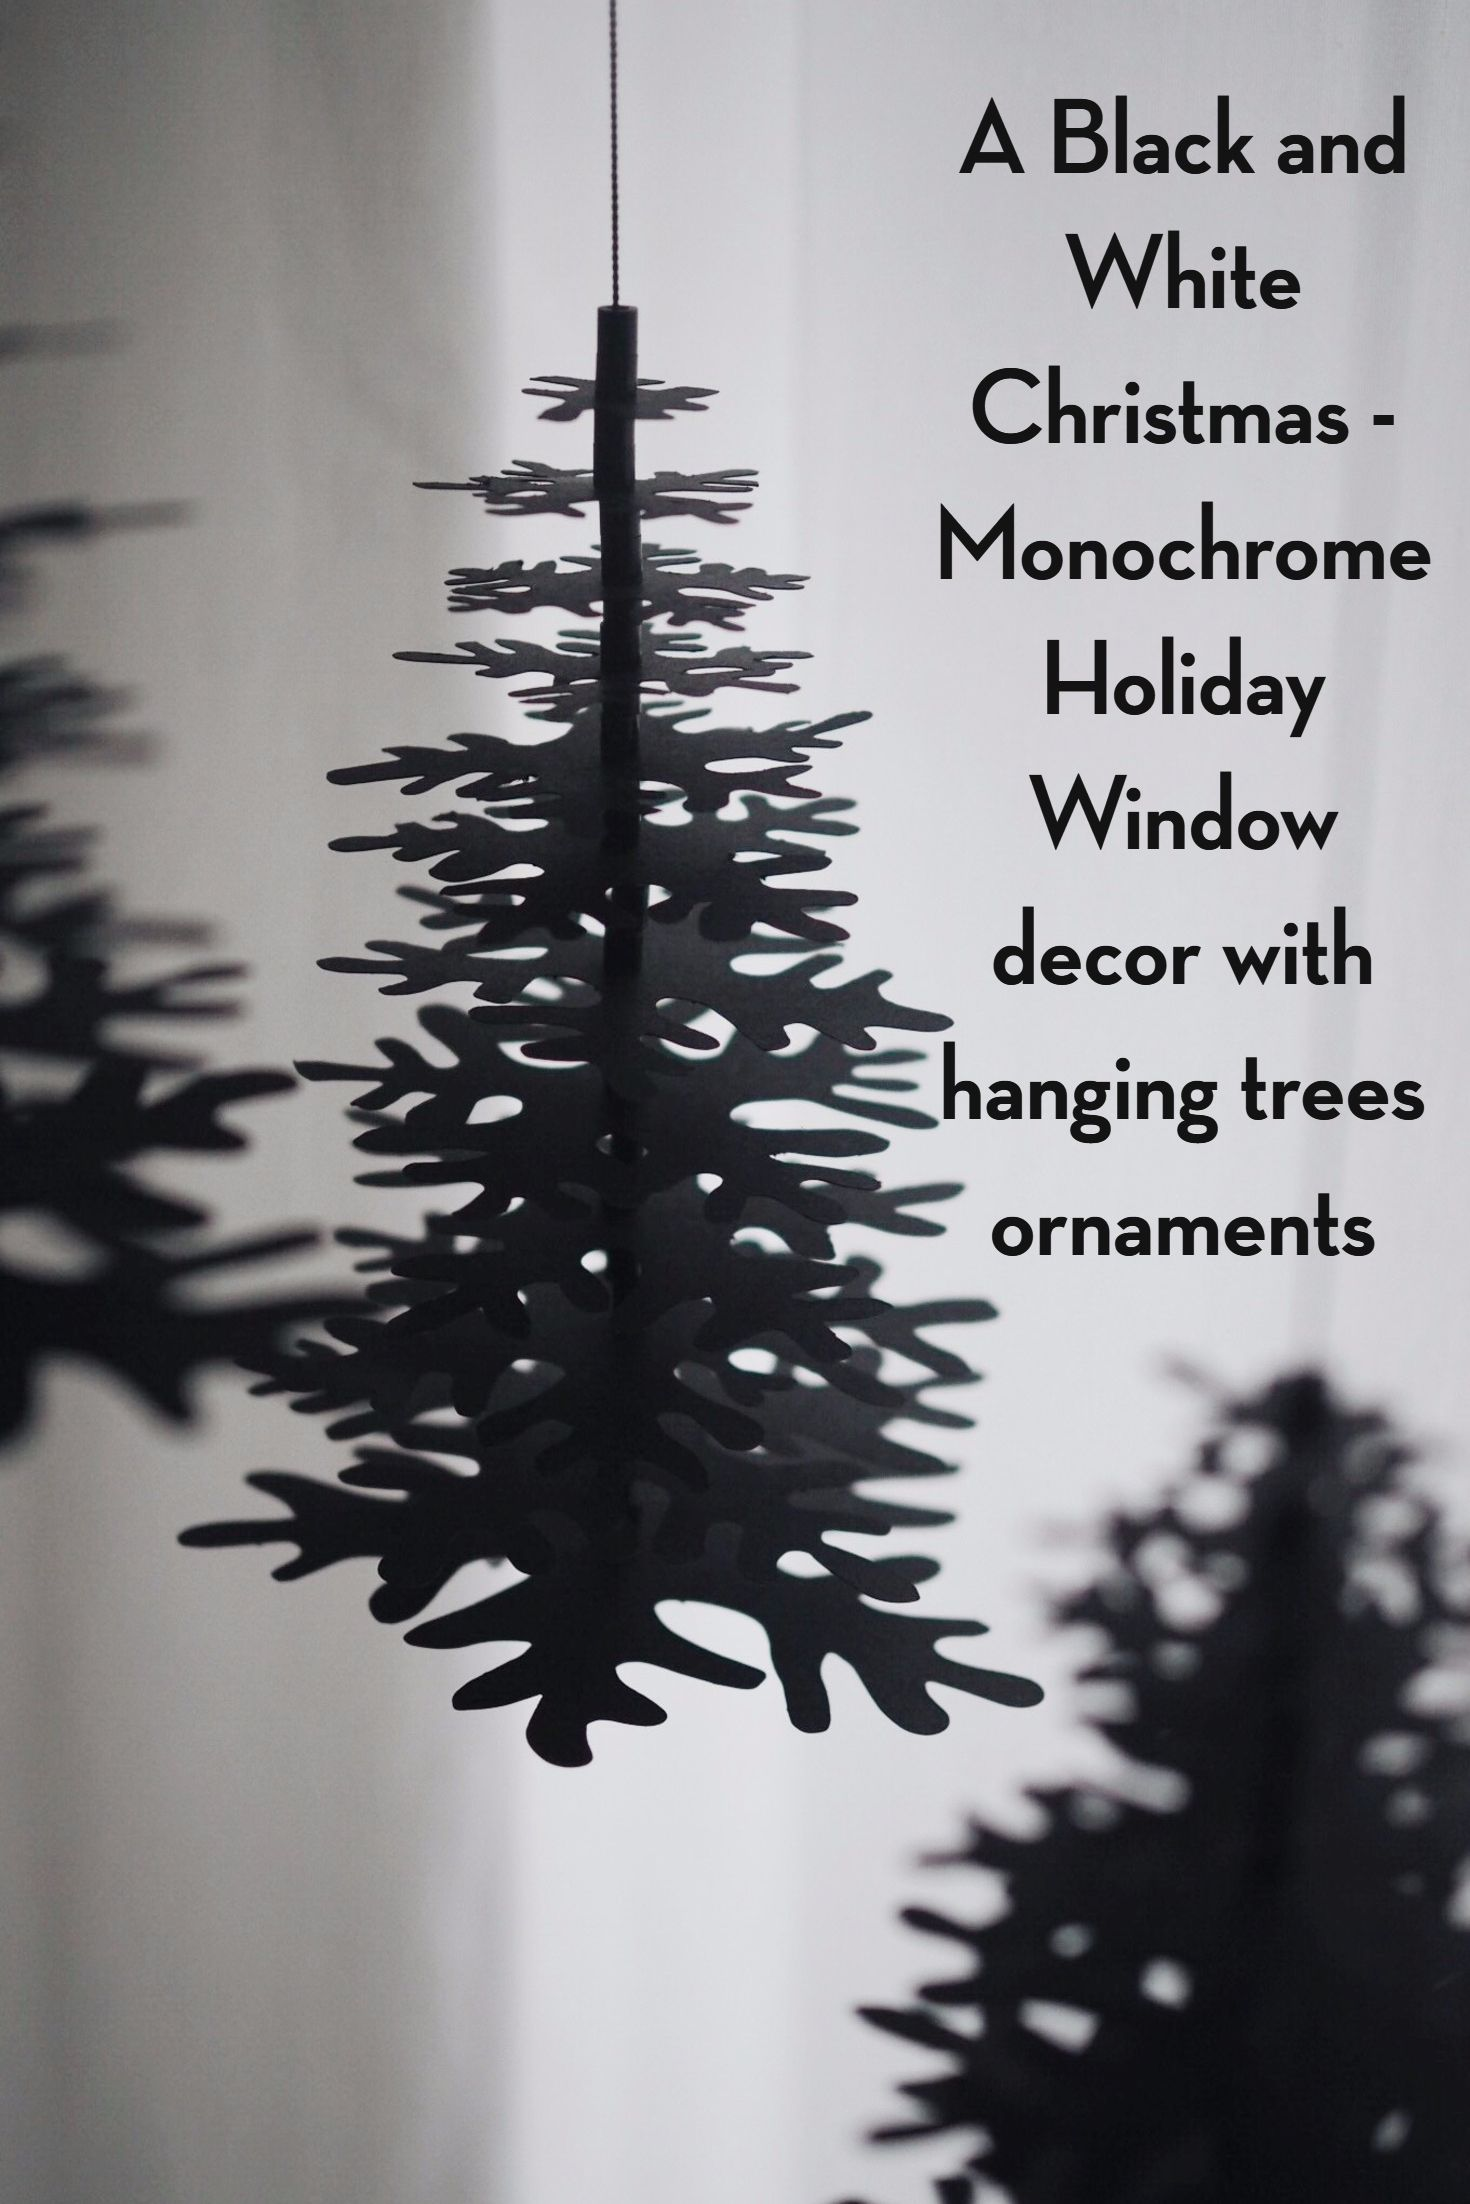 Window decor for christmas  a black and white christmas  monochrome holiday window decor with